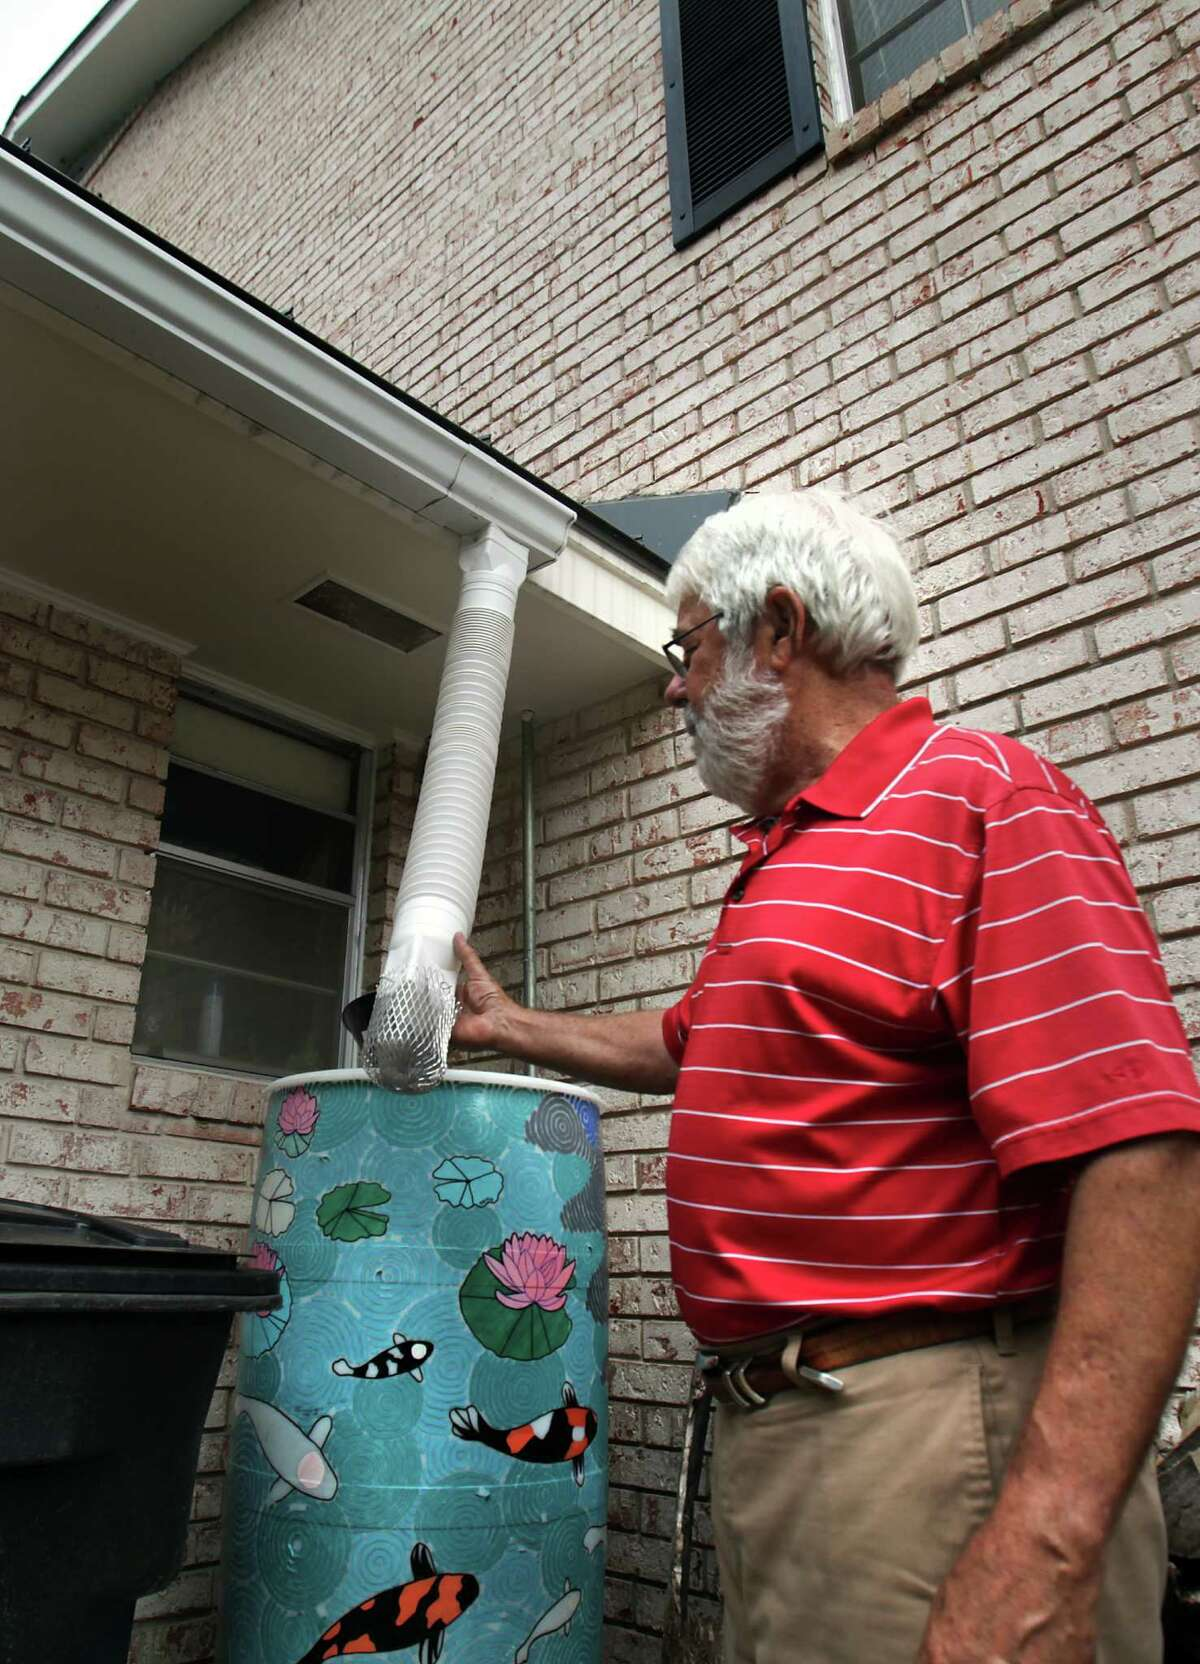 Steve Hixon checks the downspout on his water collection system at his San Antonio home. Wednesday, April 11, 2012.